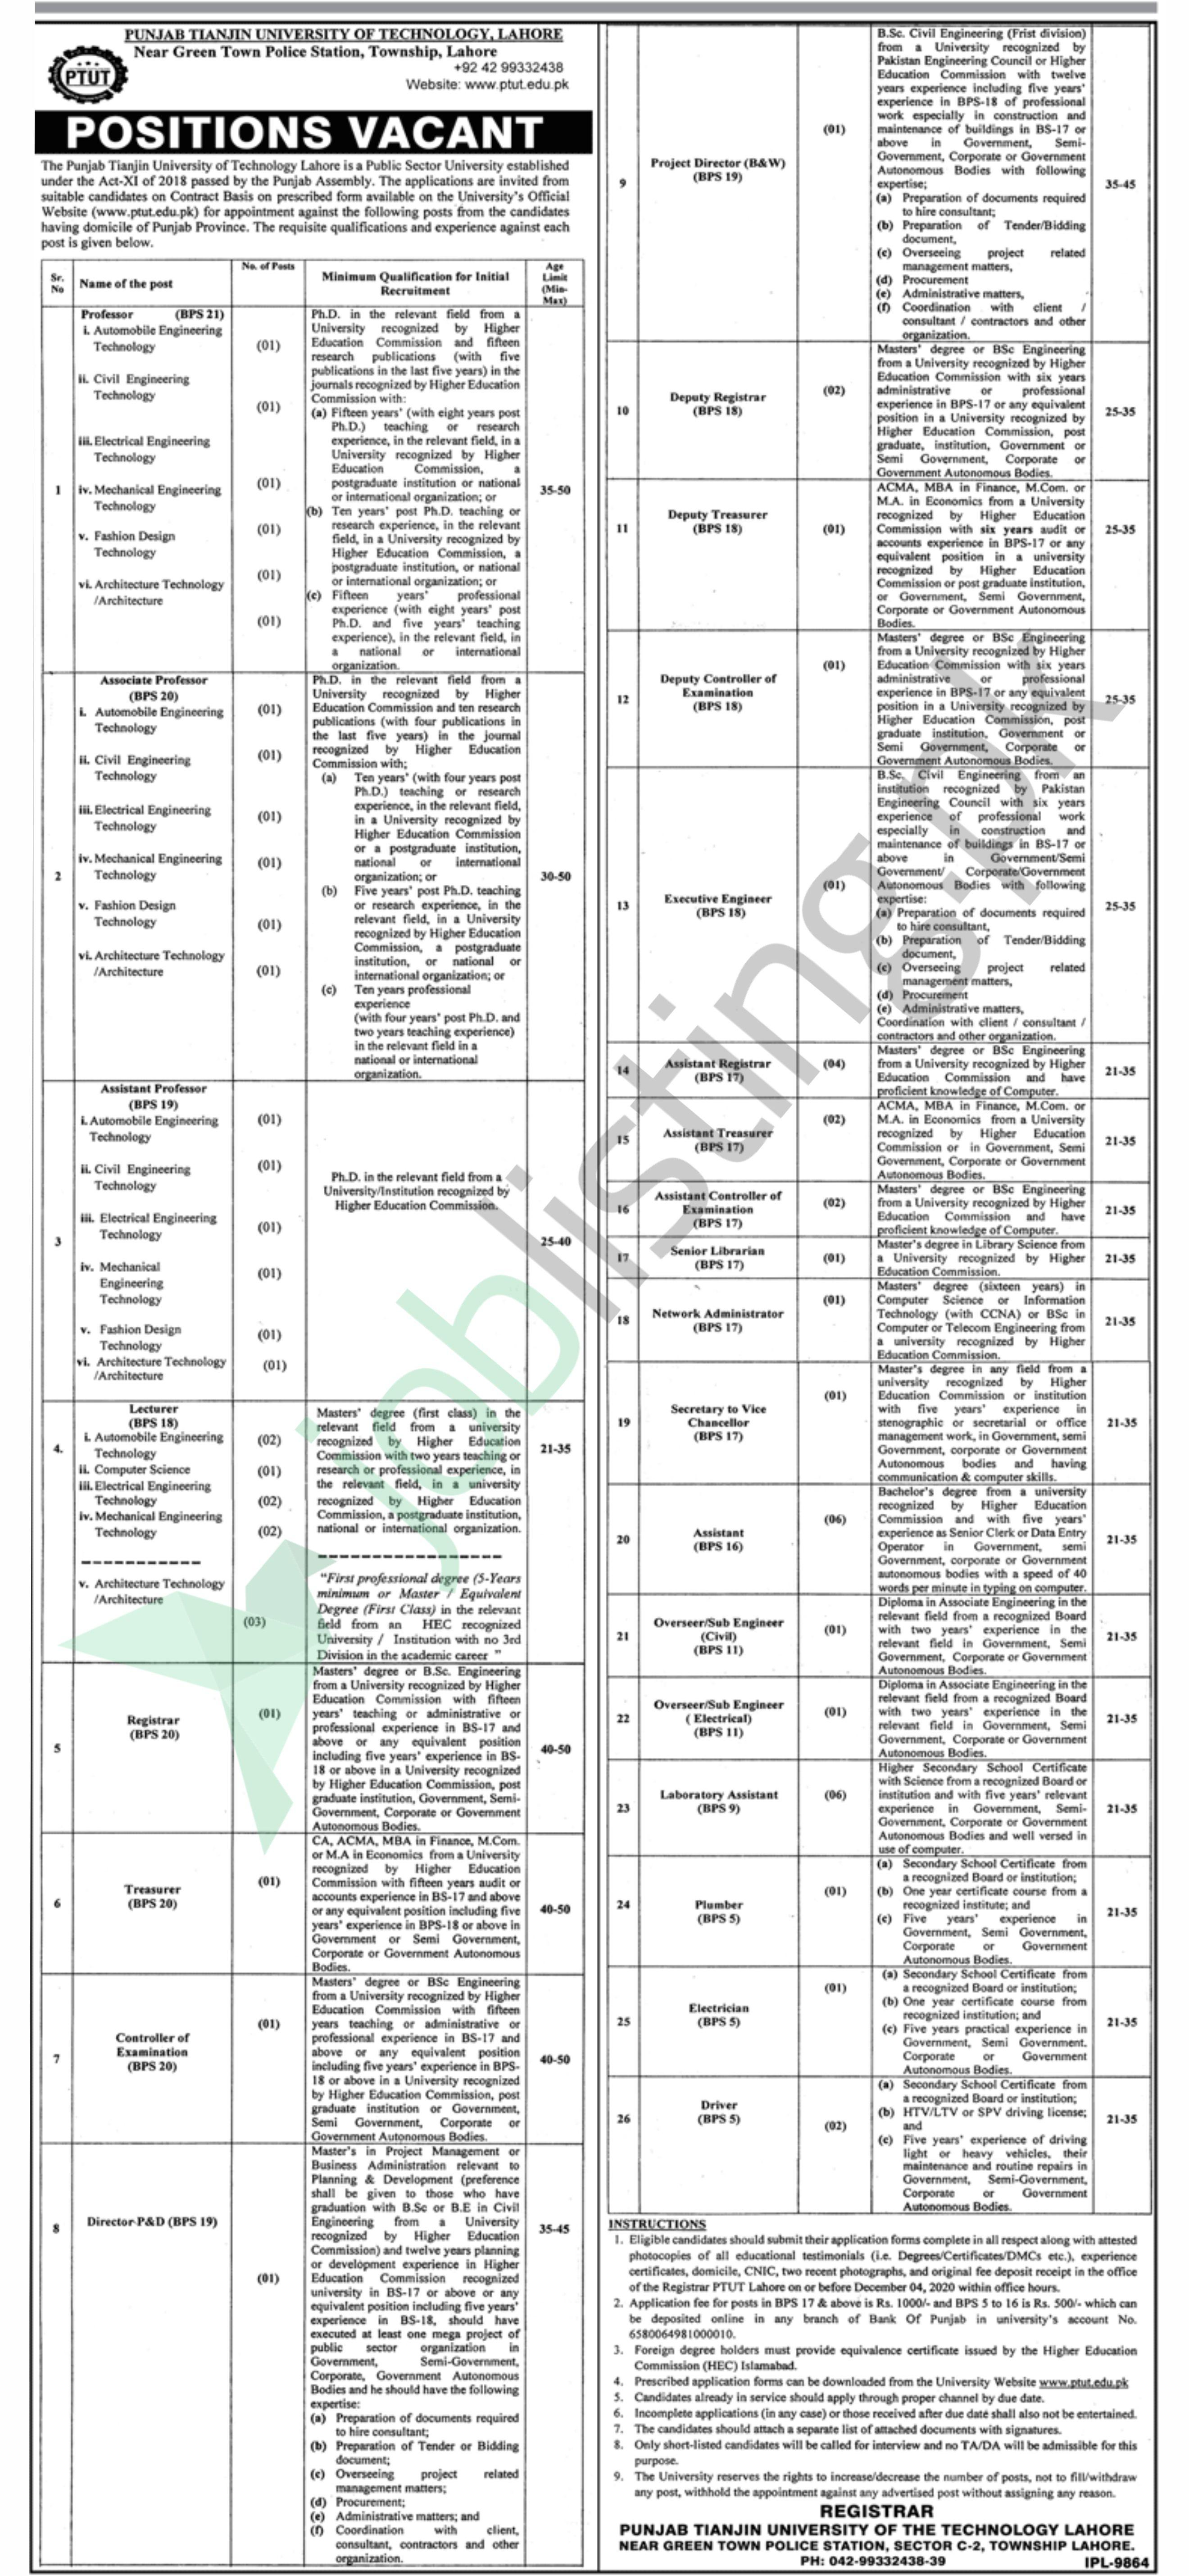 Latest Jobs in Punjab Tianjin University of Technology, Lahore 2020